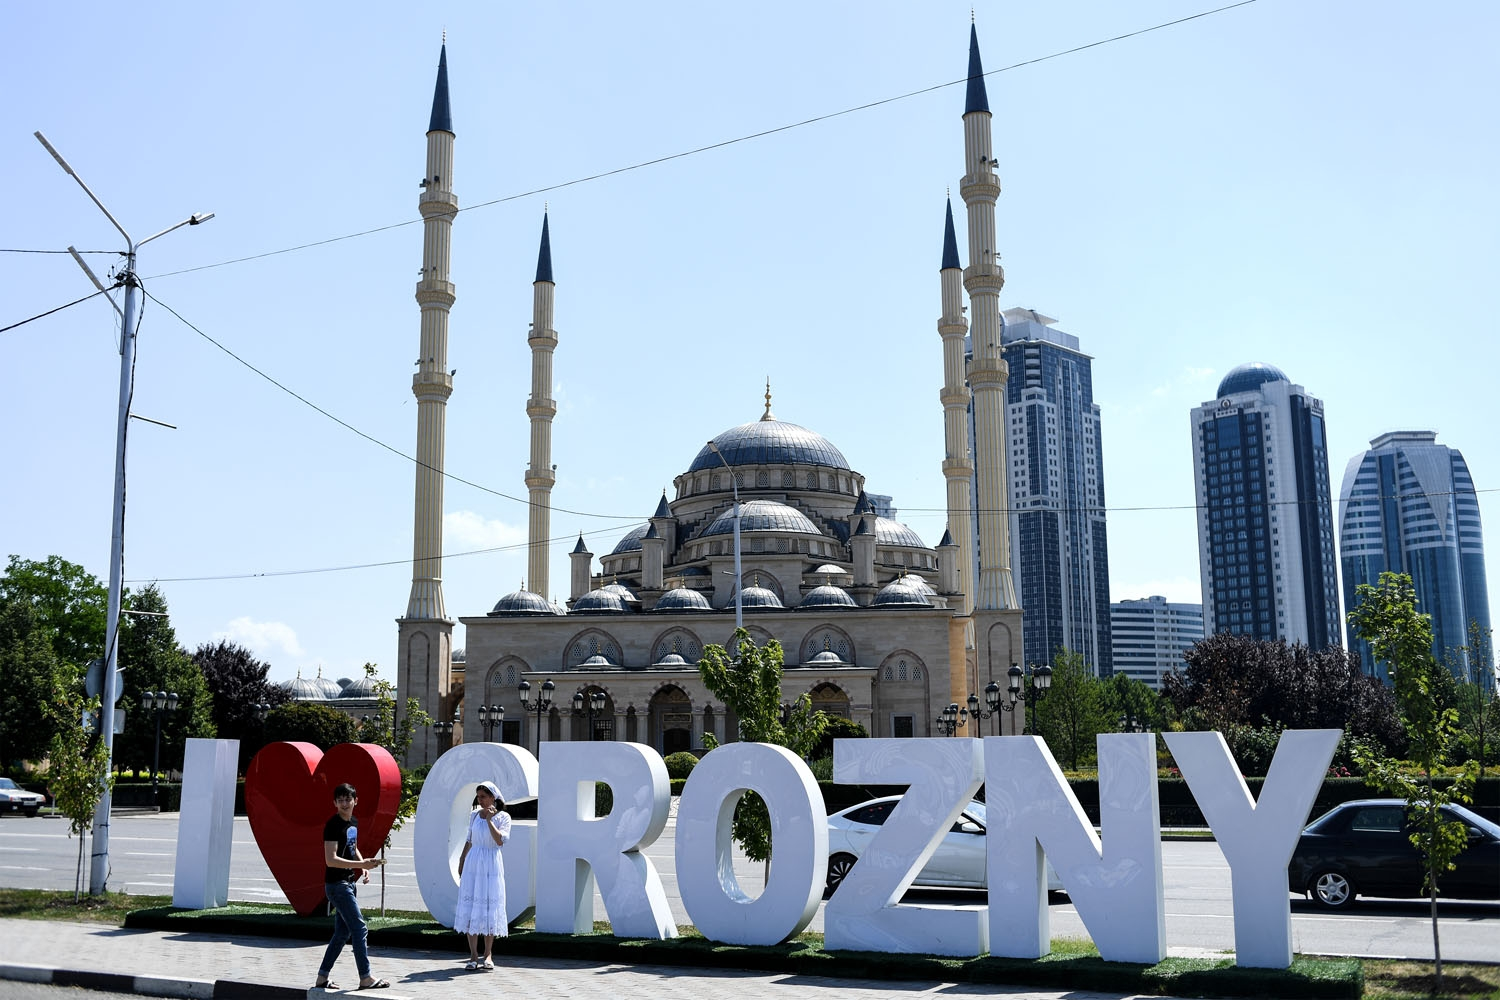 Young people take a photo in front of the Heart of Chechnya - Akhmad Kadyrov Mosque and large letters reading 'I love Grozny' in central Grozny on July 26, 2017.